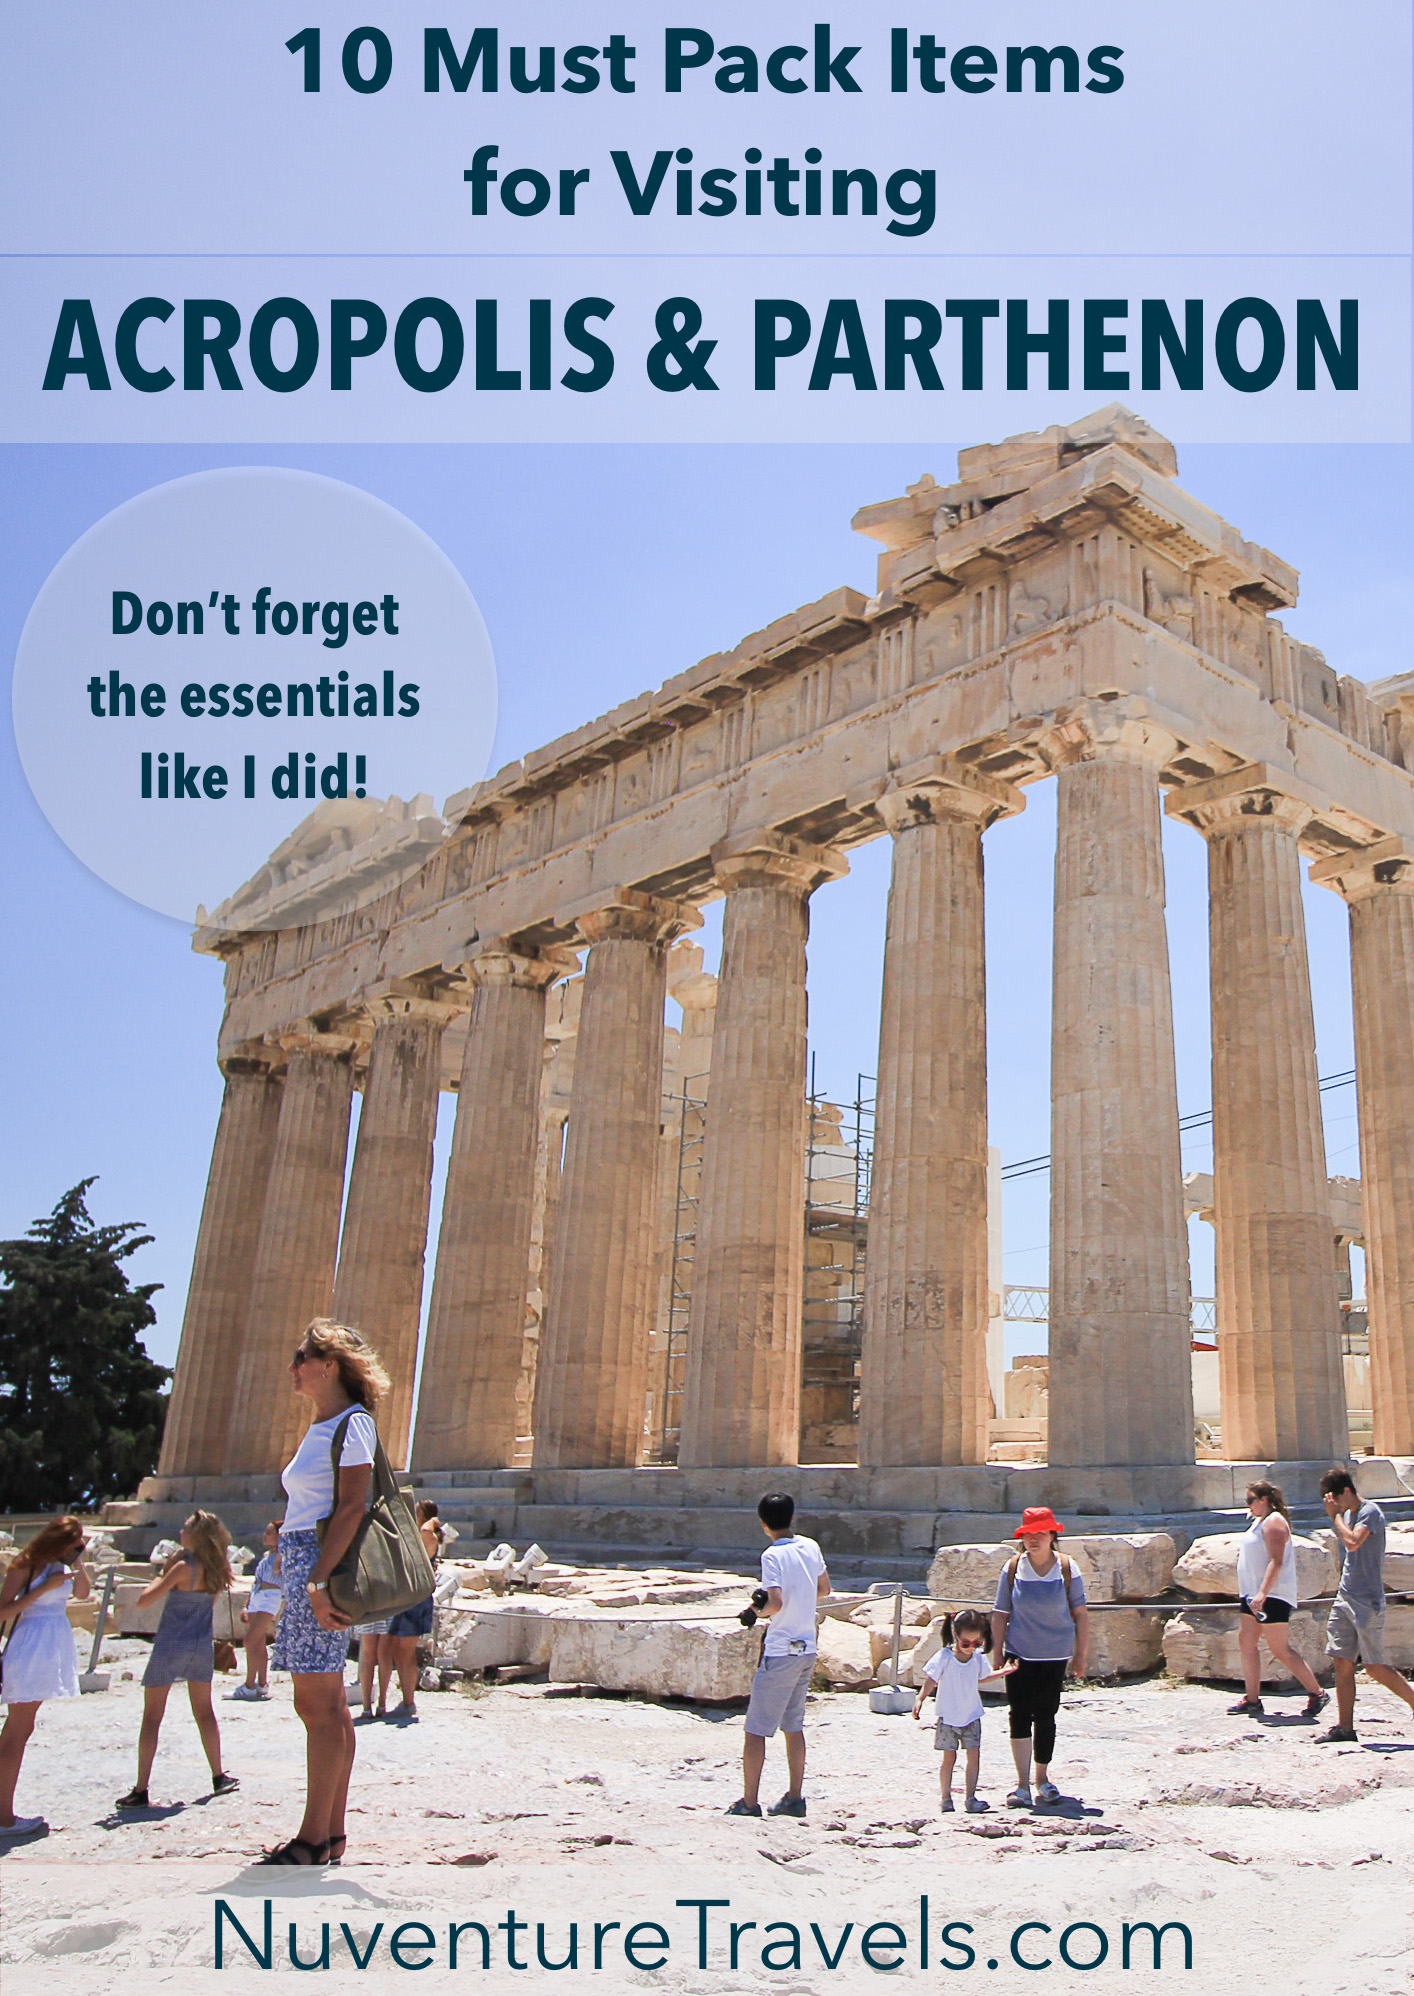 10 Must Pack Items When Visiting the Acropolis and Parthenon: Essential Gear